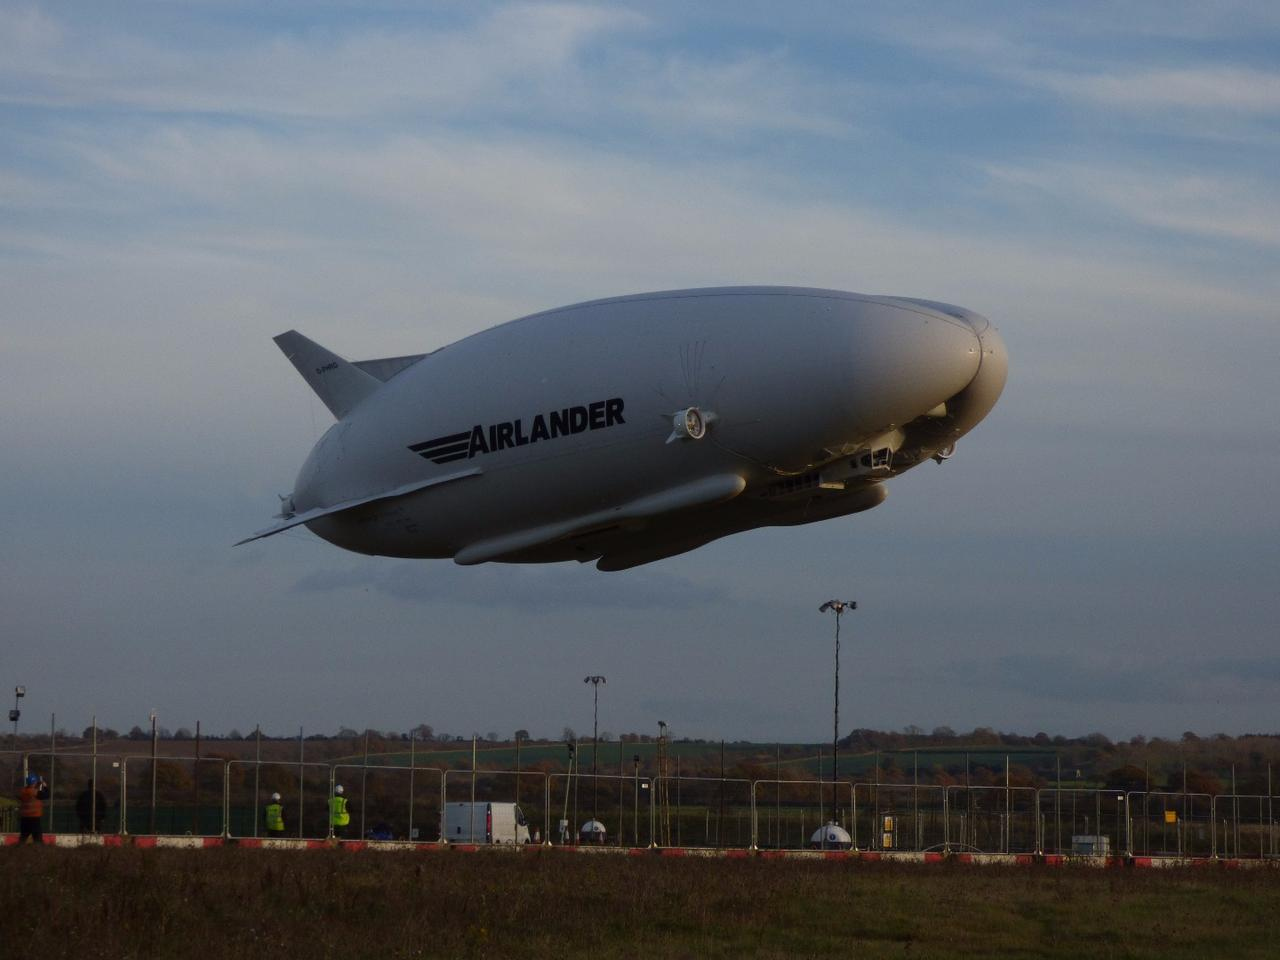 Airlander 10, shortly after taking off on its sixth test flight